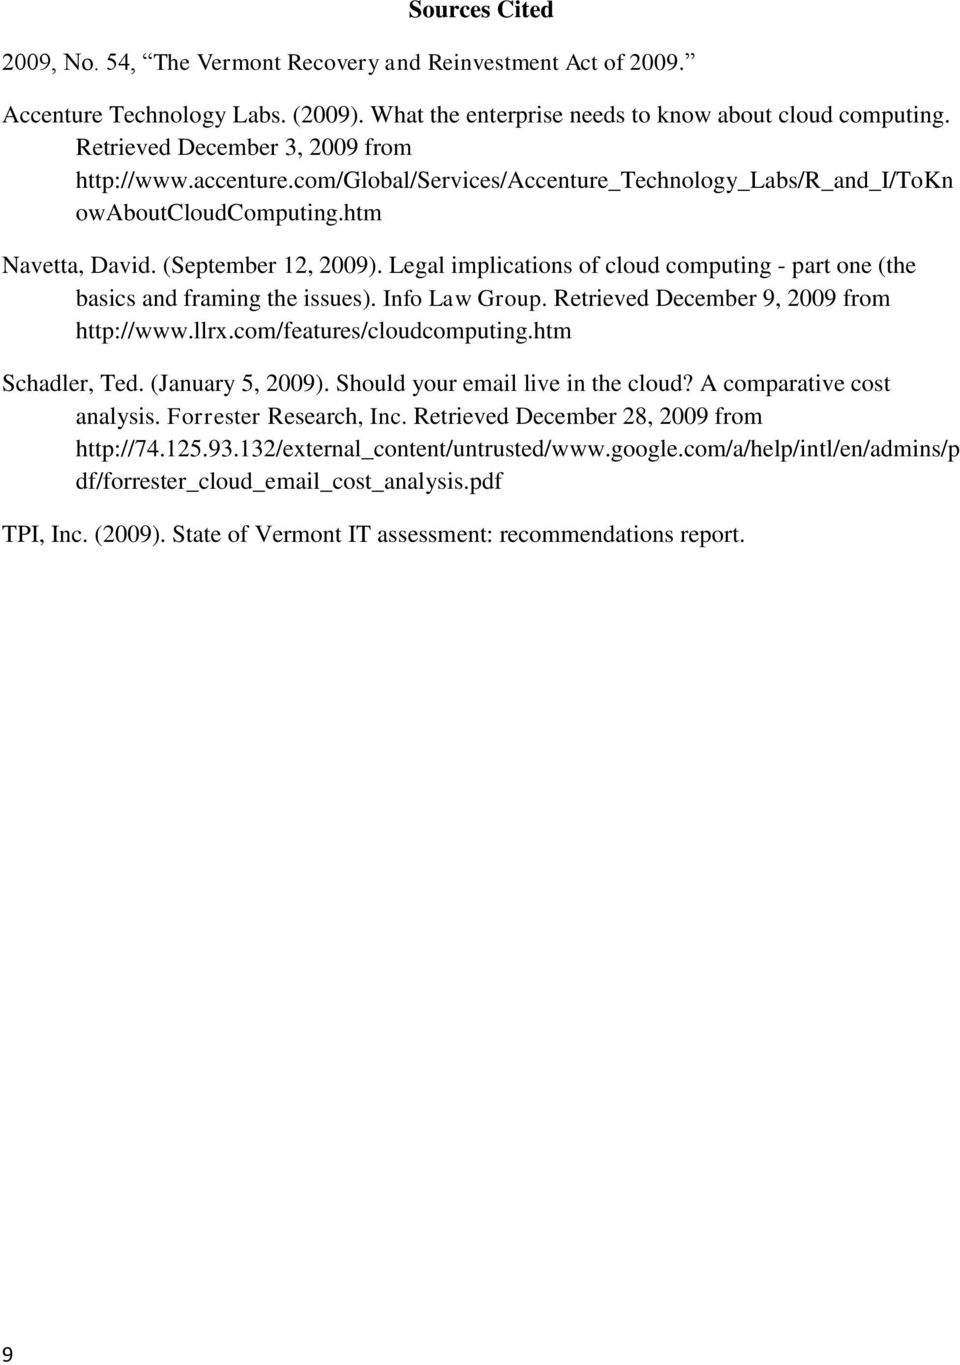 Legal implications of cloud computing - part one (the basics and framing the issues). Info Law Group. Retrieved December 9, 2009 from http://www.llrx.com/features/cloudcomputing.htm Schadler, Ted.